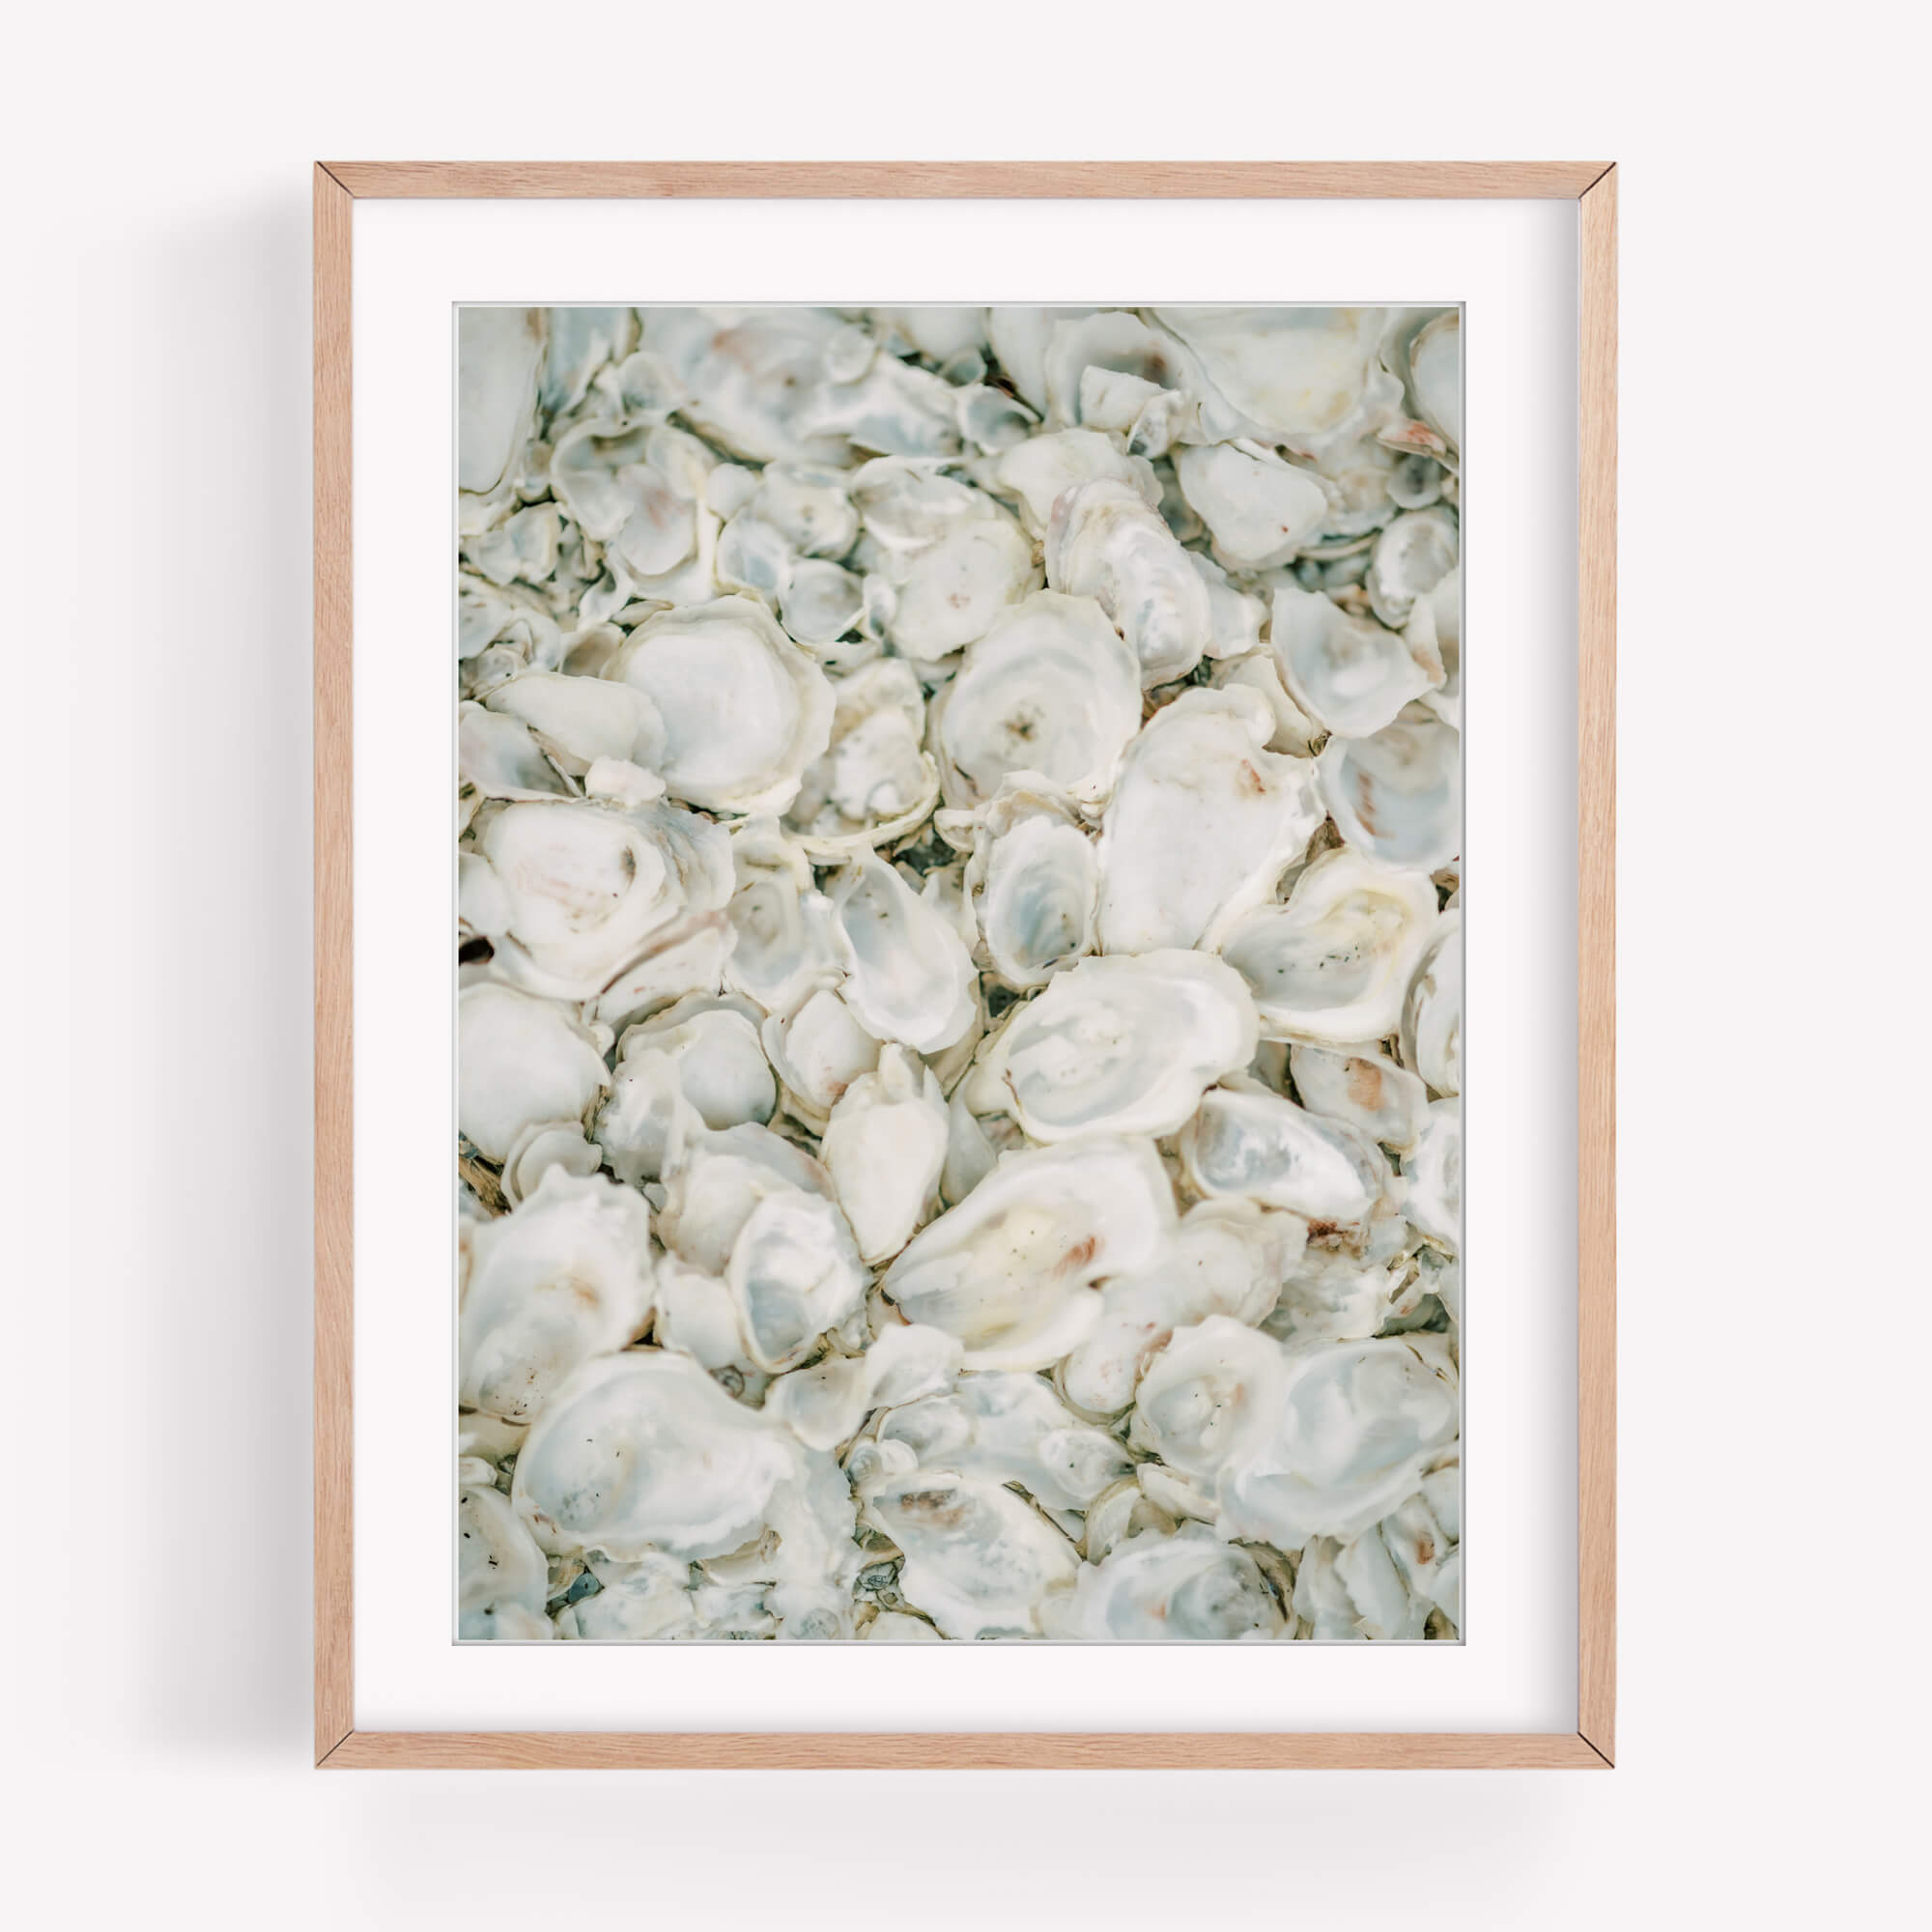 Oysters Galore - Care Studio Prints